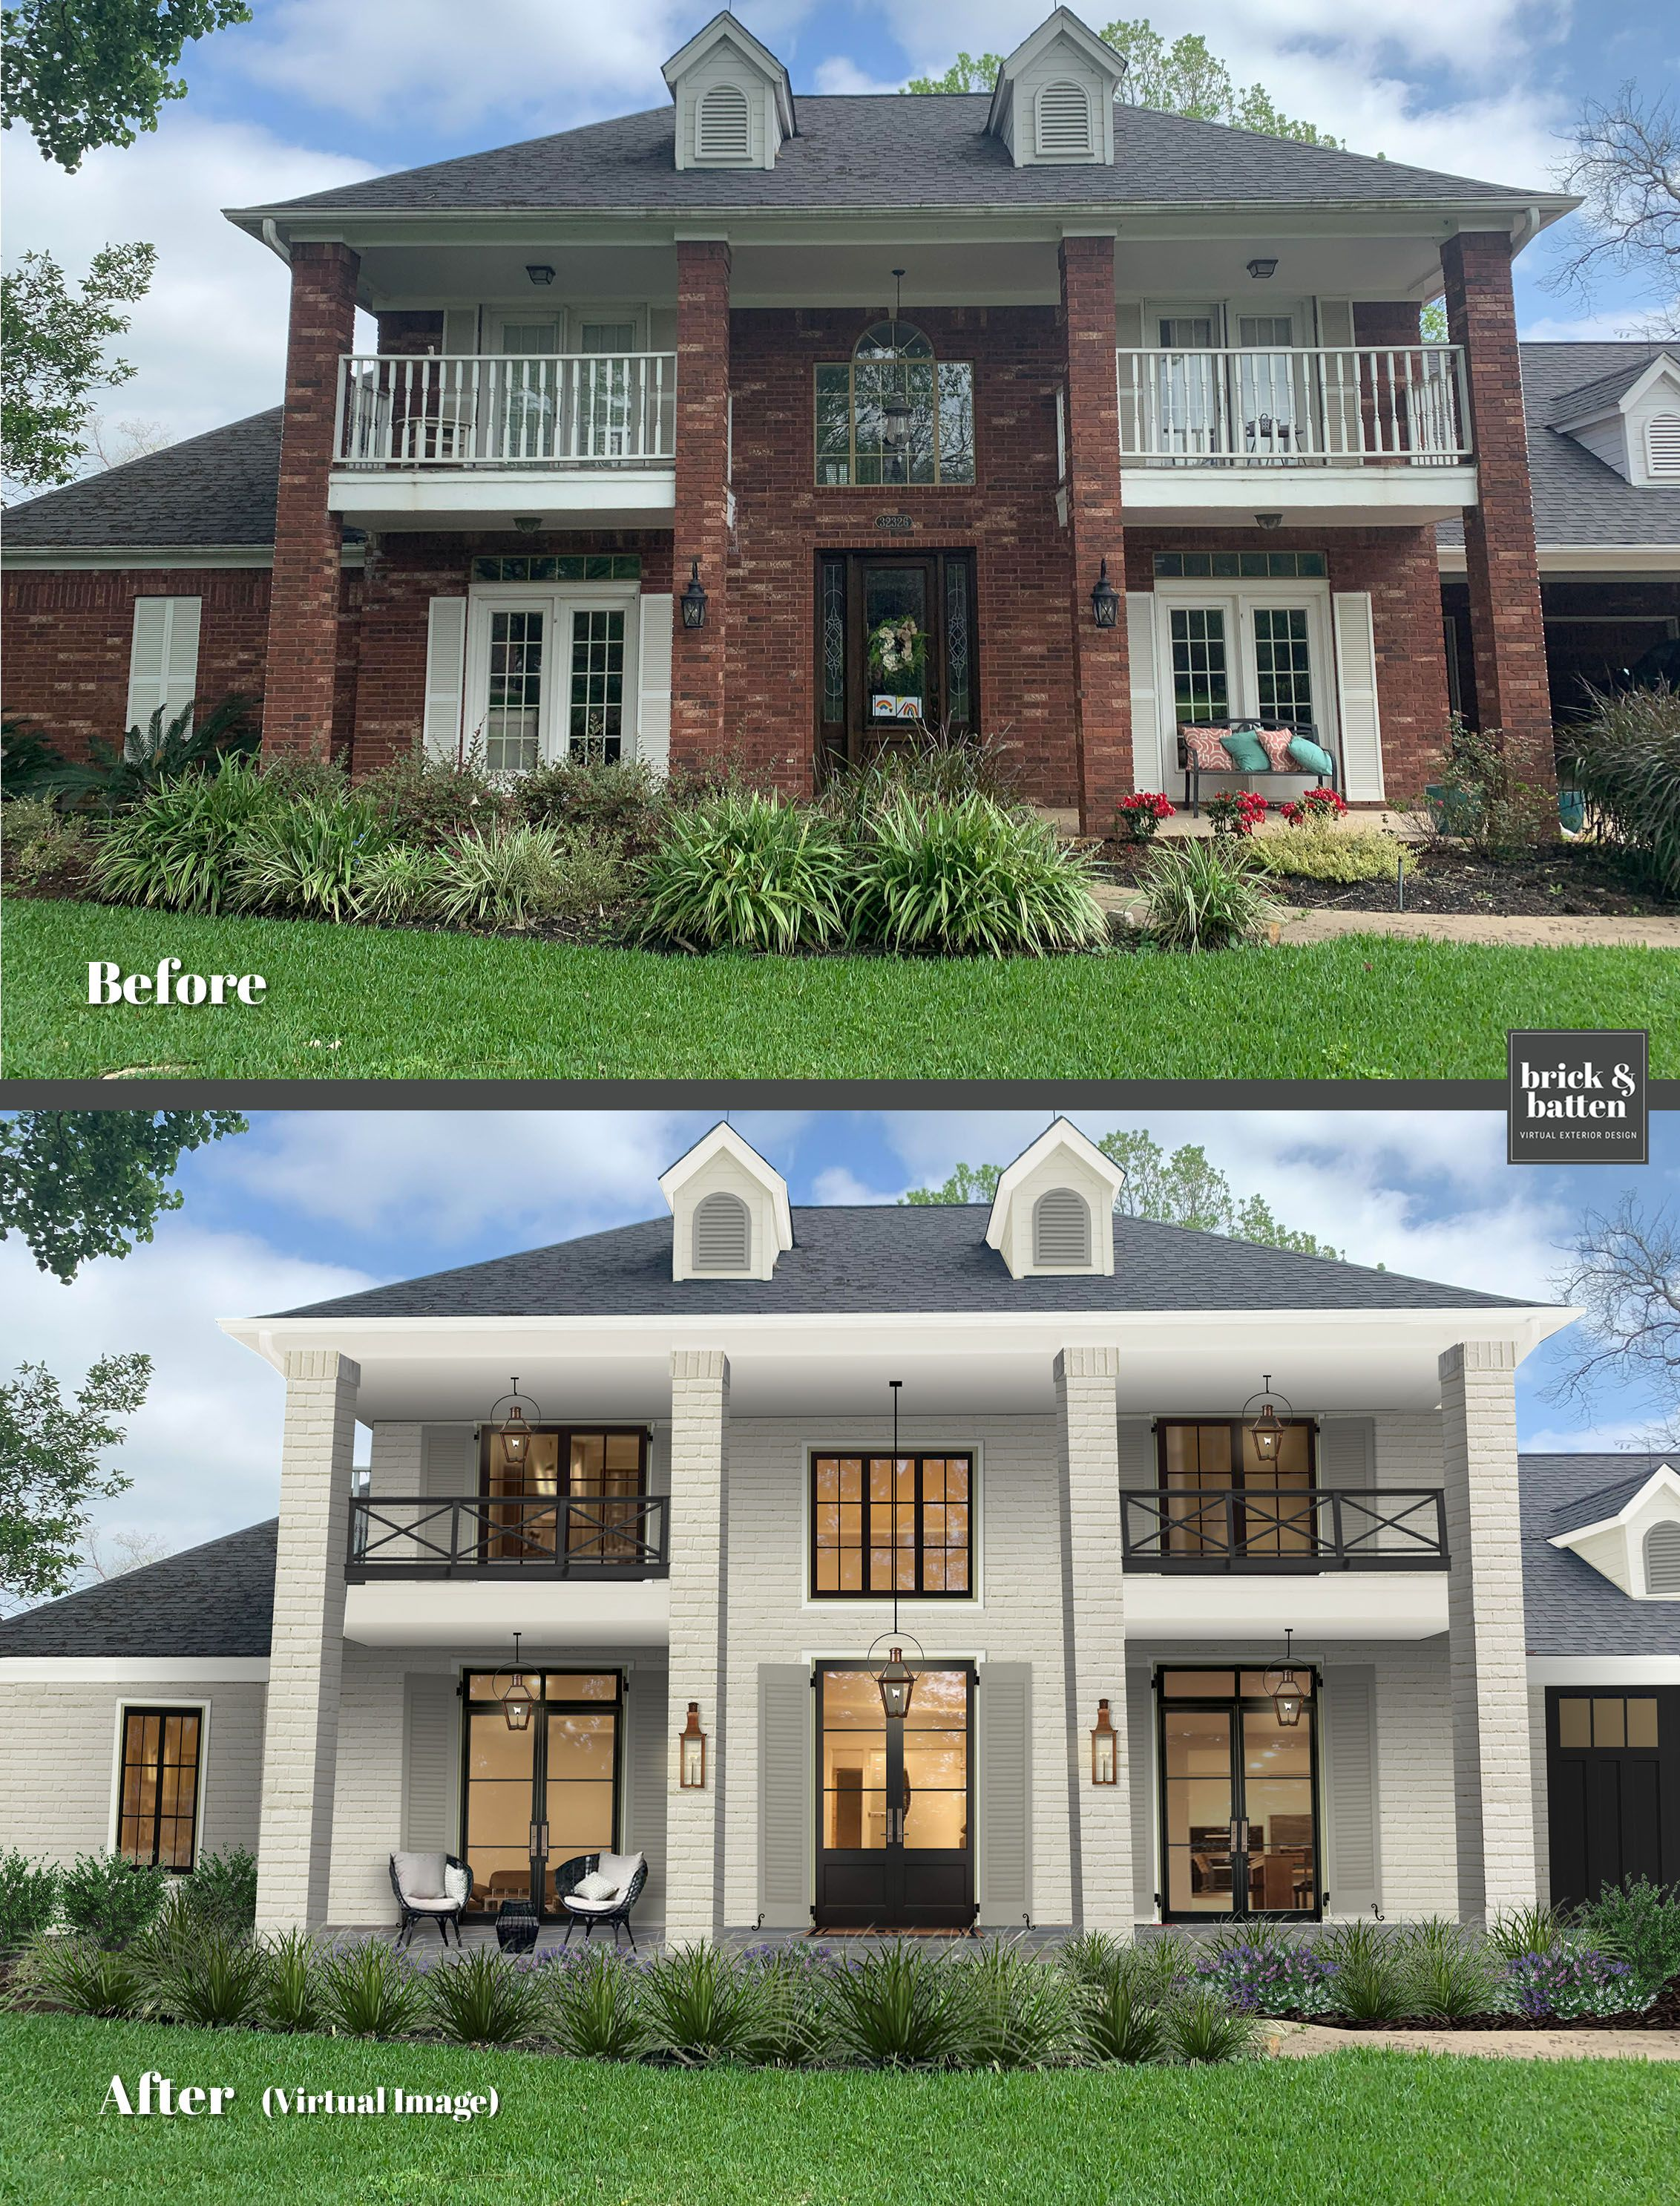 Pin On Before And After Photos